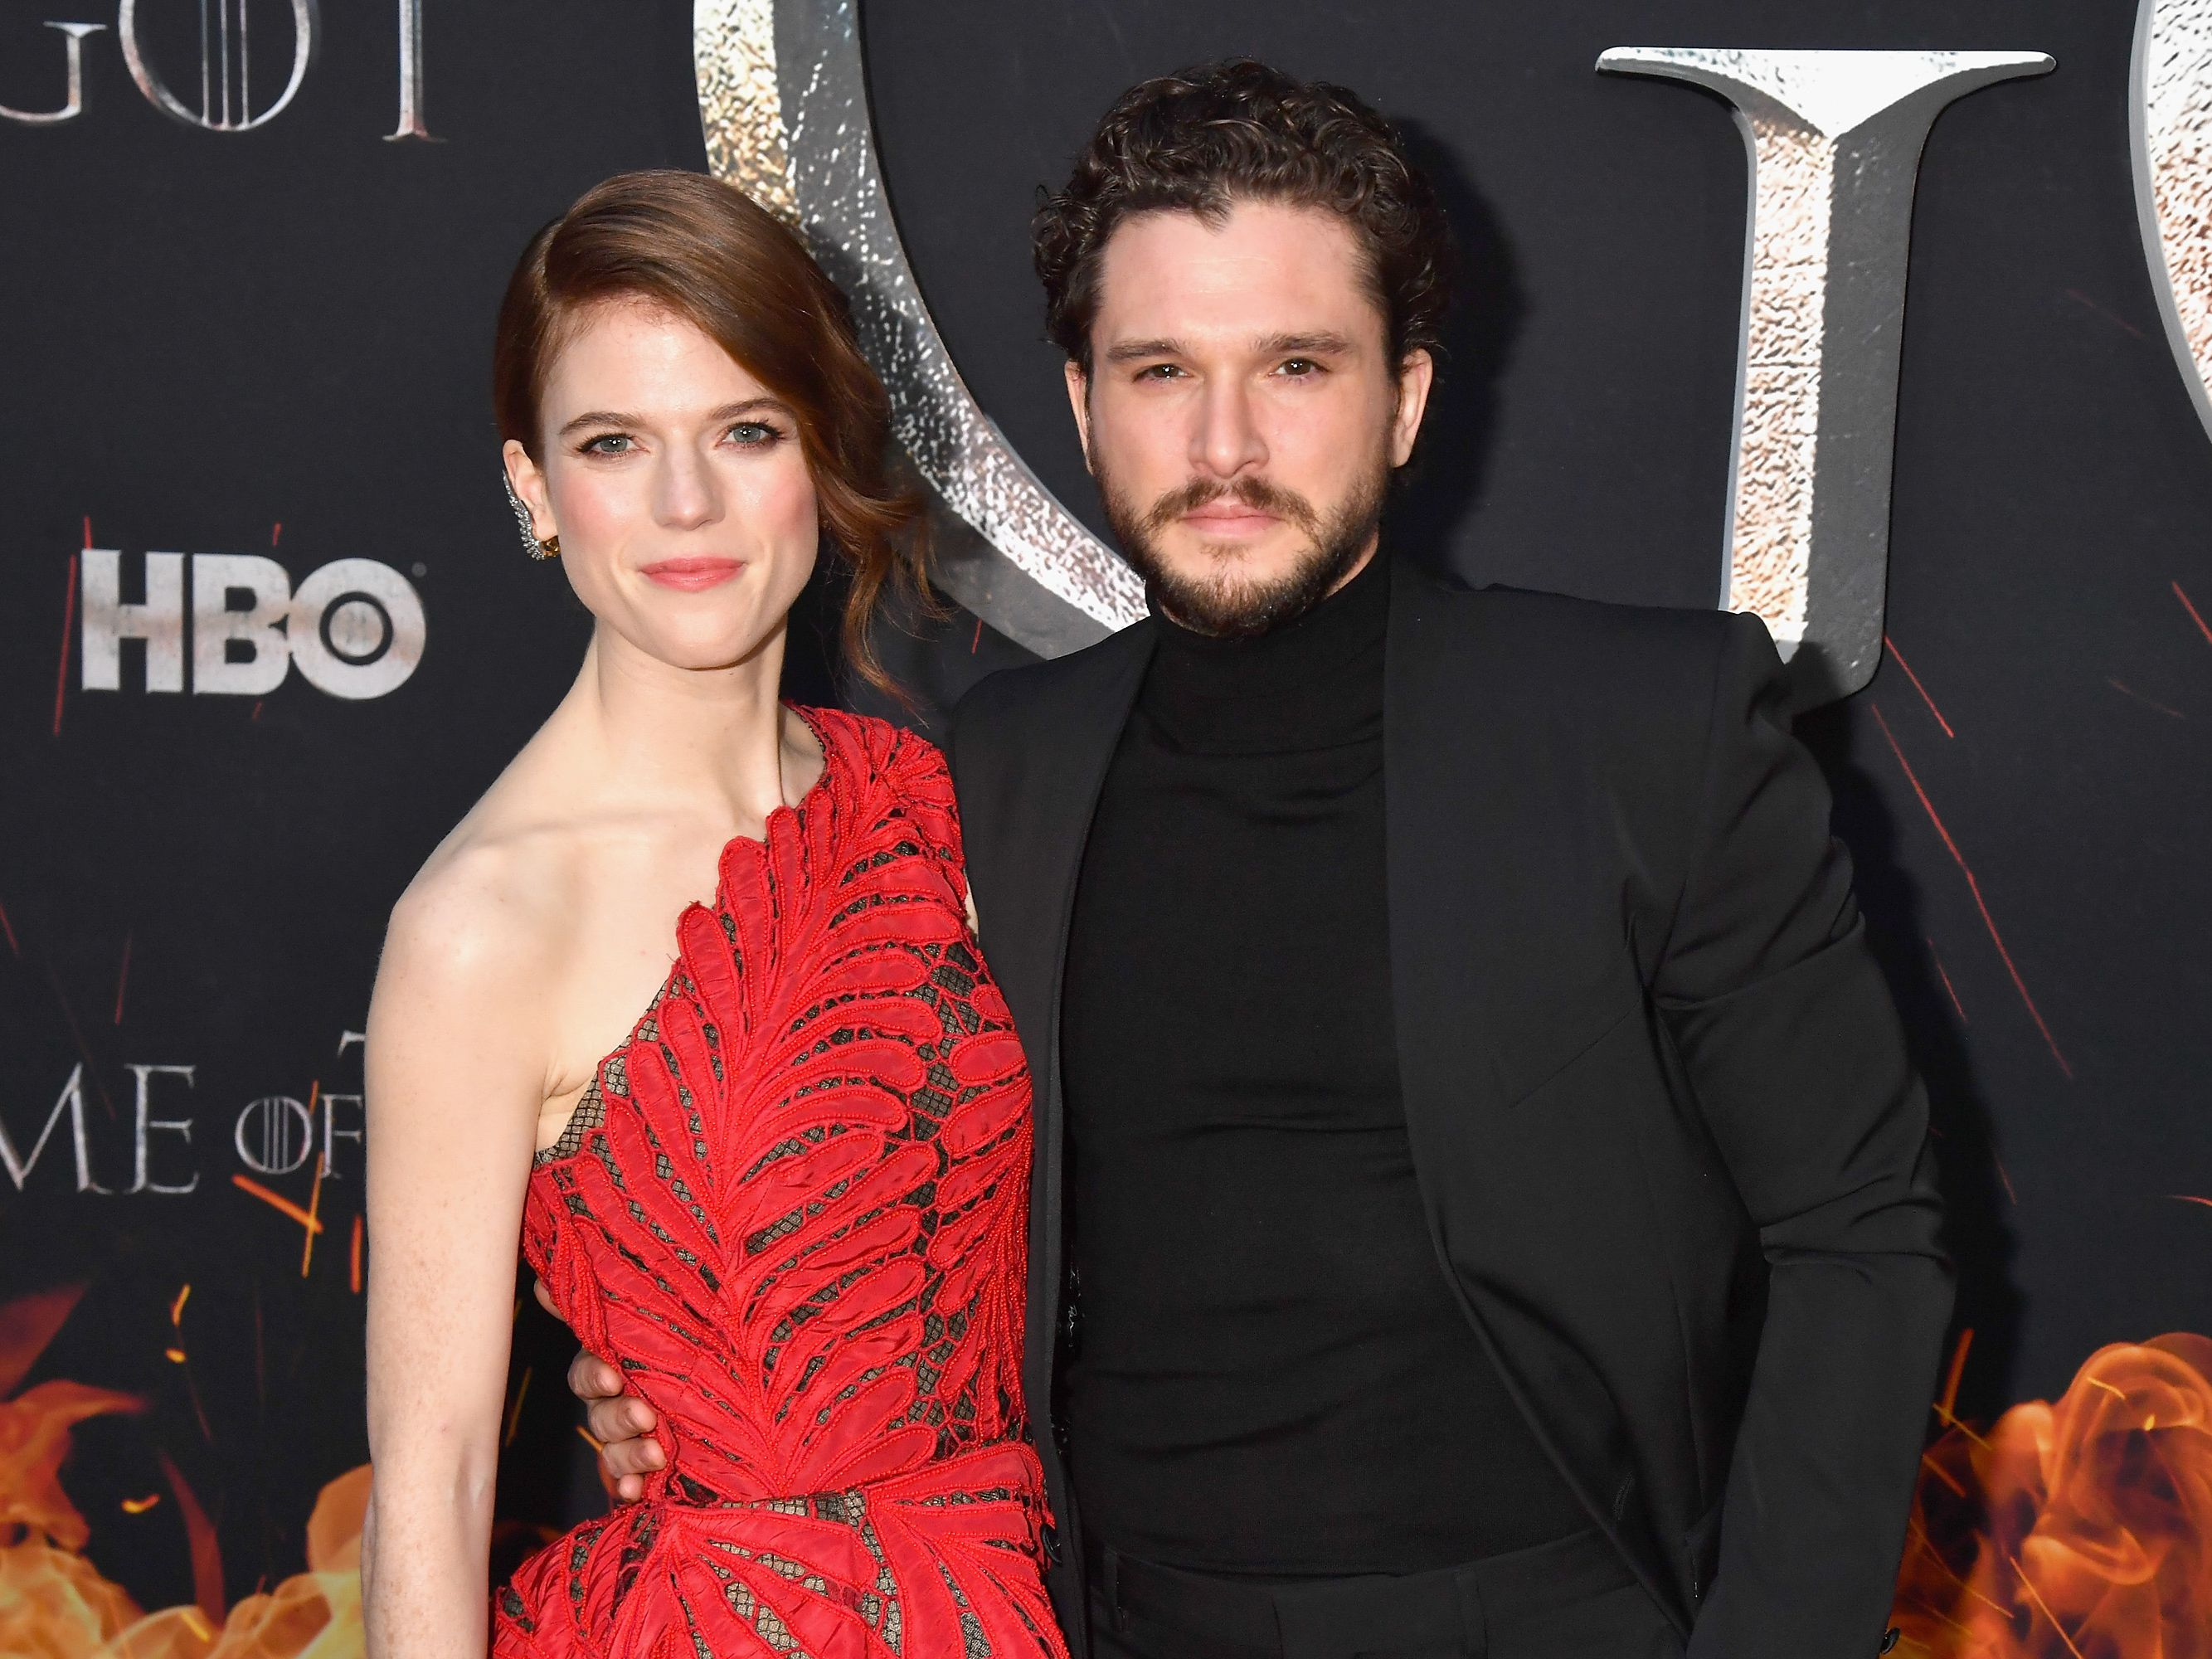 Kit Harington Tried to Prank Wife Rose Leslie Again—But She Got the